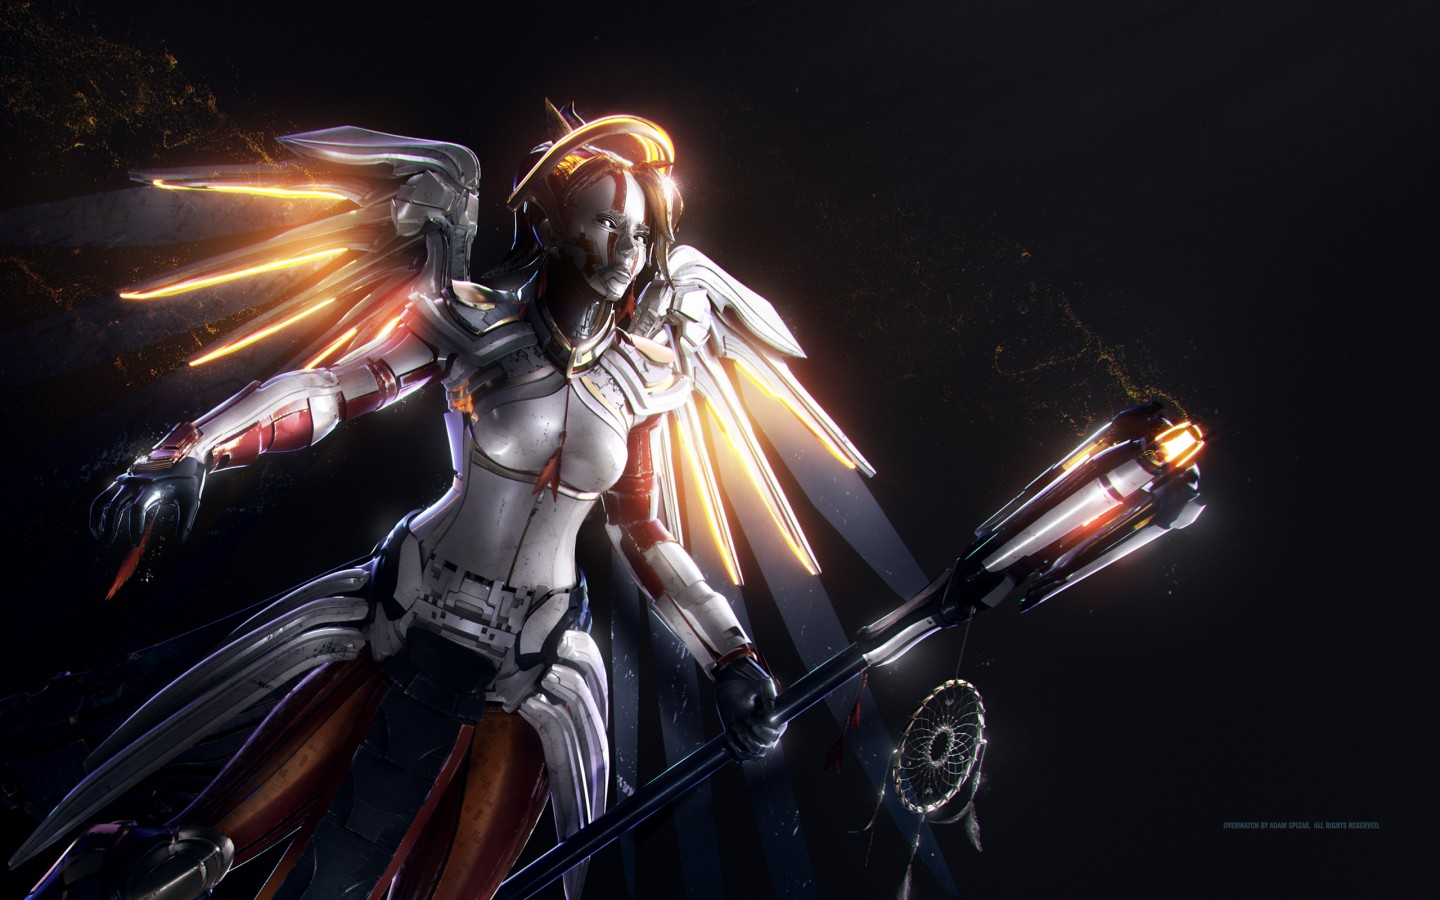 Devil May Cry Wallpaper Hd Mercy Artwork Overwatch Wallpapers Hd Wallpapers Id 20572